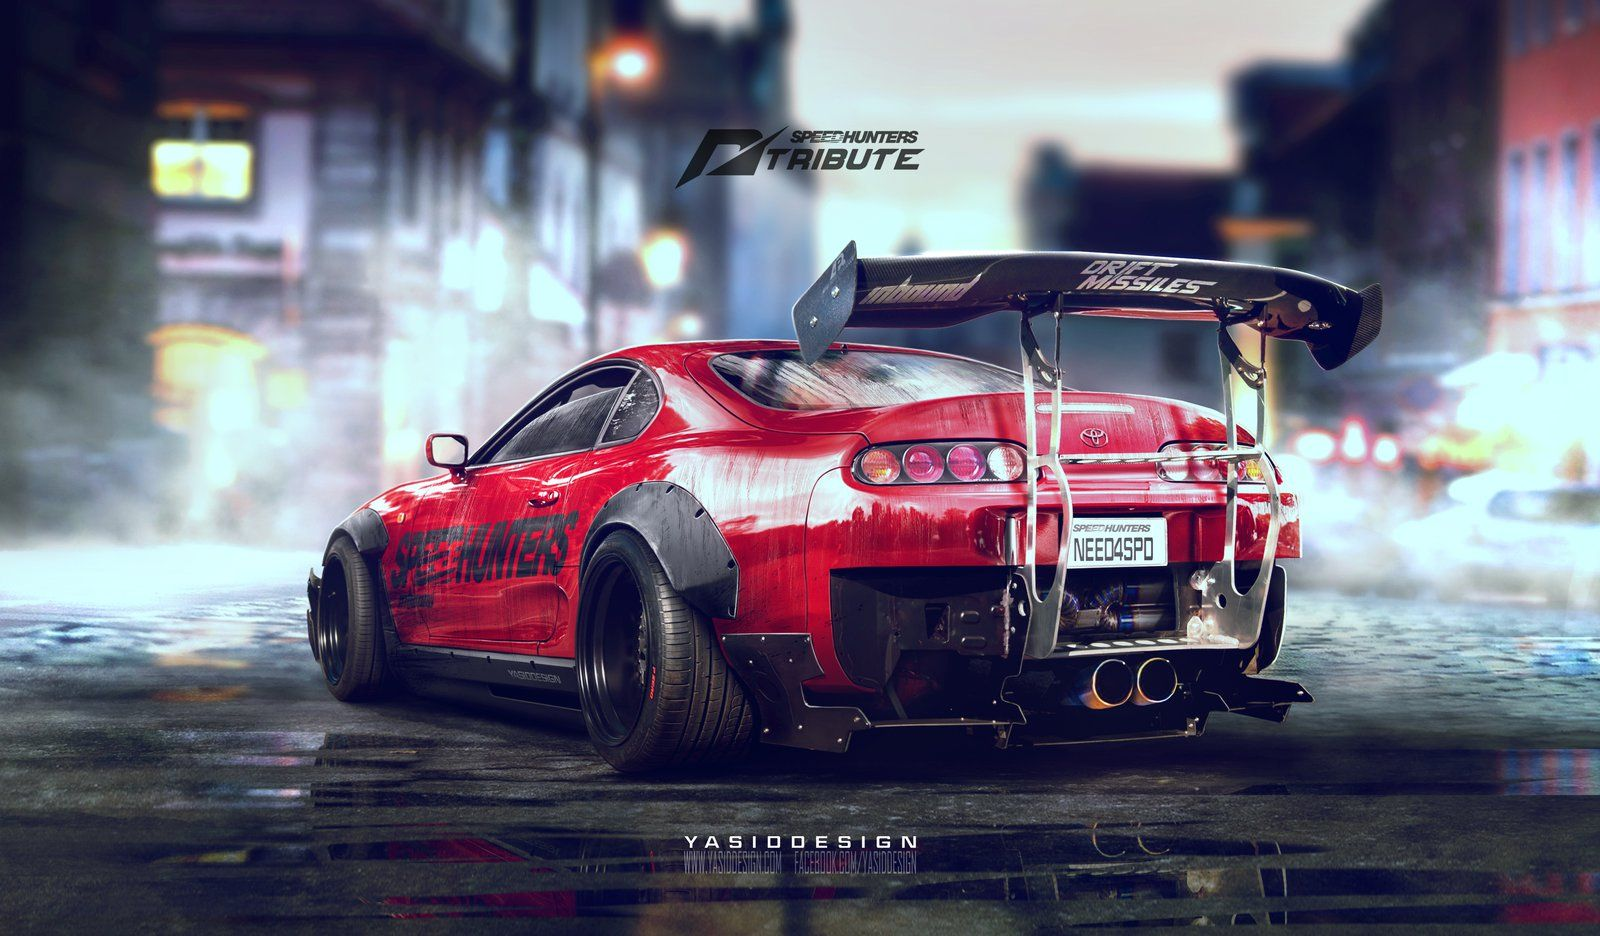 best 25 nfs need for speed ideas on pinterest need for speed cars need for speed and for mustang. Black Bedroom Furniture Sets. Home Design Ideas